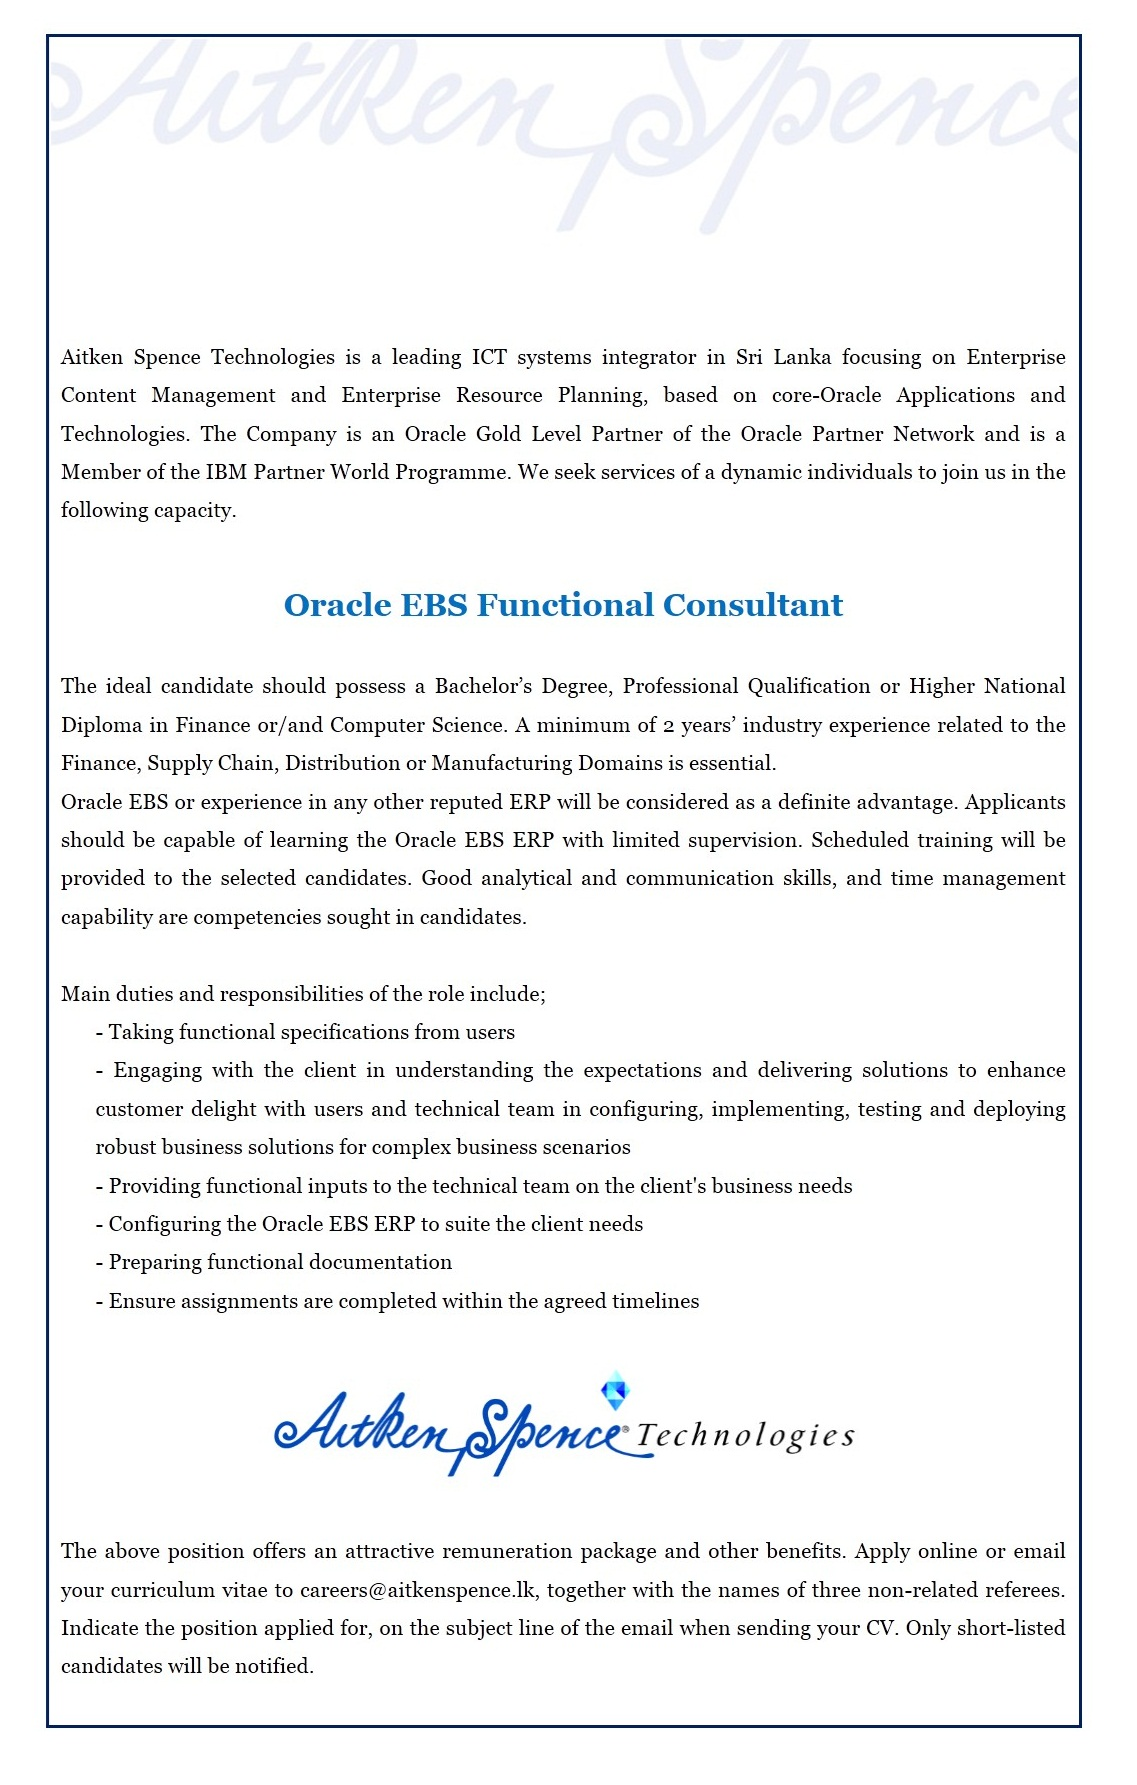 Oracle EBS Functional Consultant